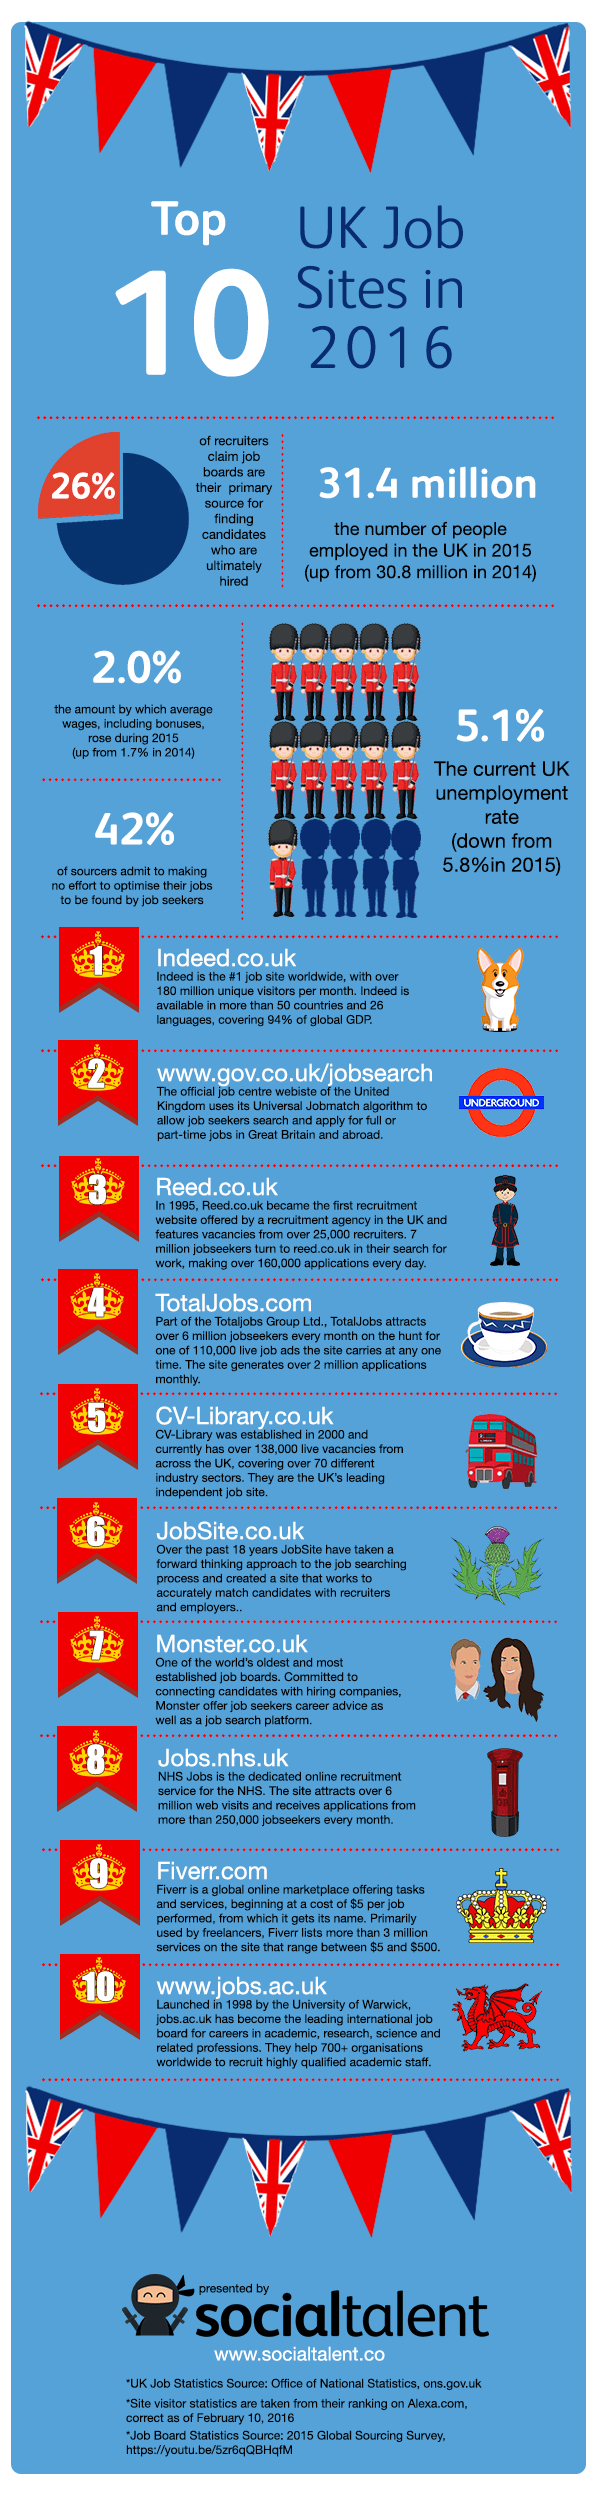 the best uk job sites 2016 career experts best uk job sites